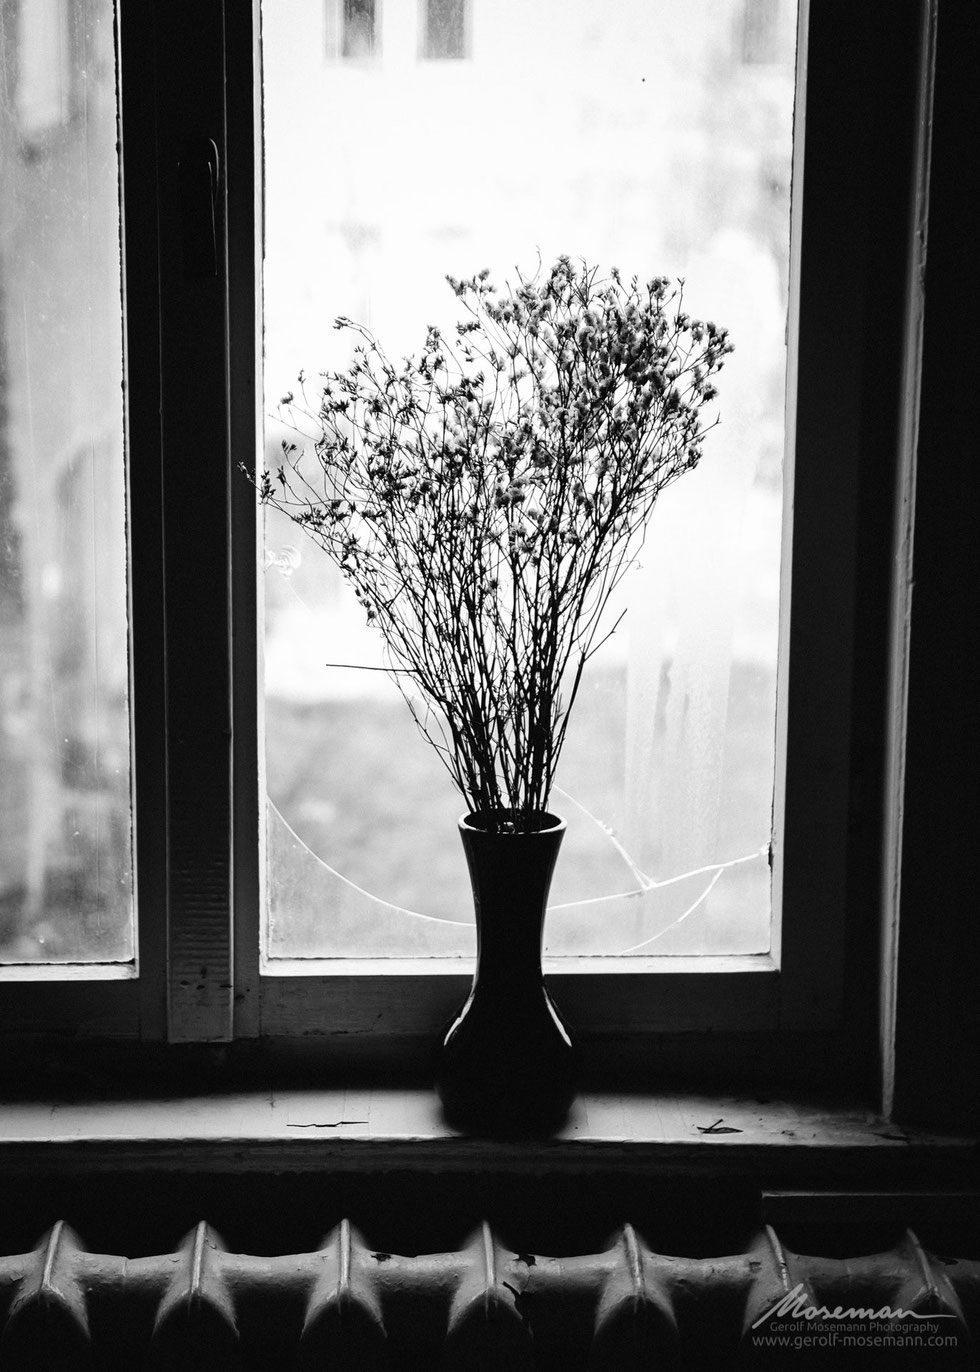 A bouquet of flowers in a broken window